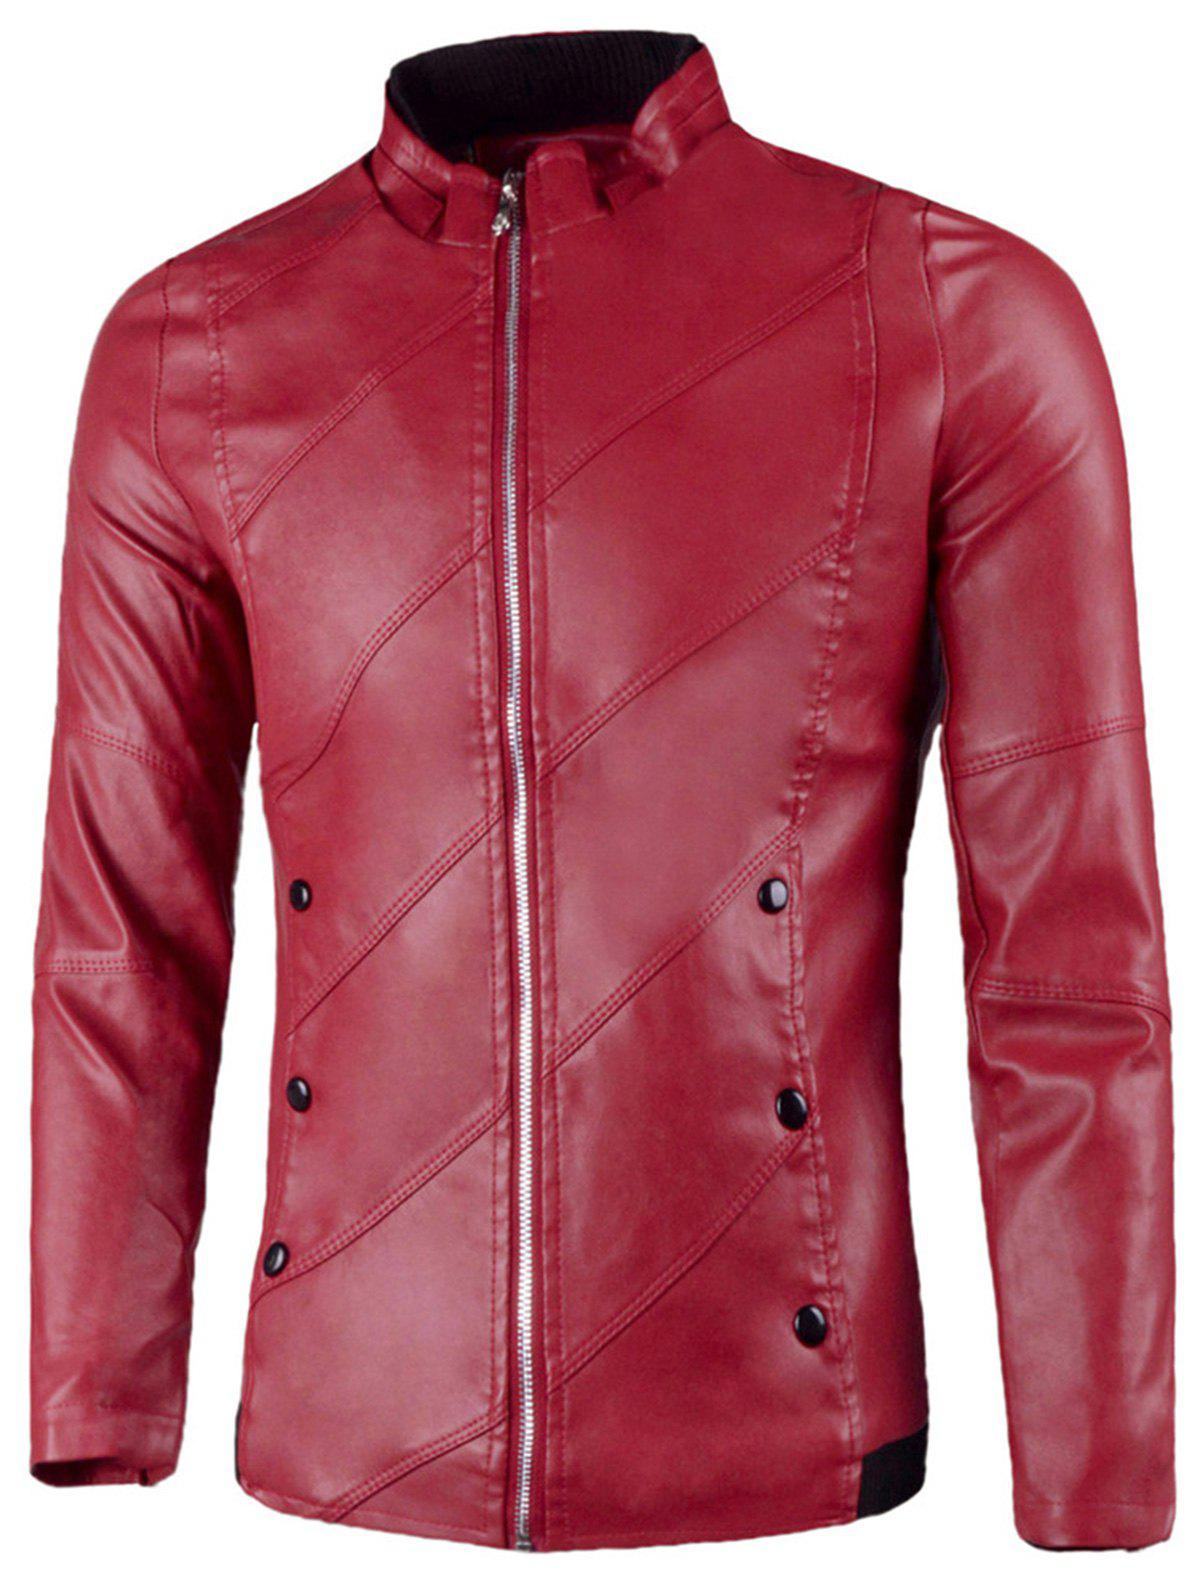 Buy Flap Button Embellished Stand Collar Faux Leather Jacket